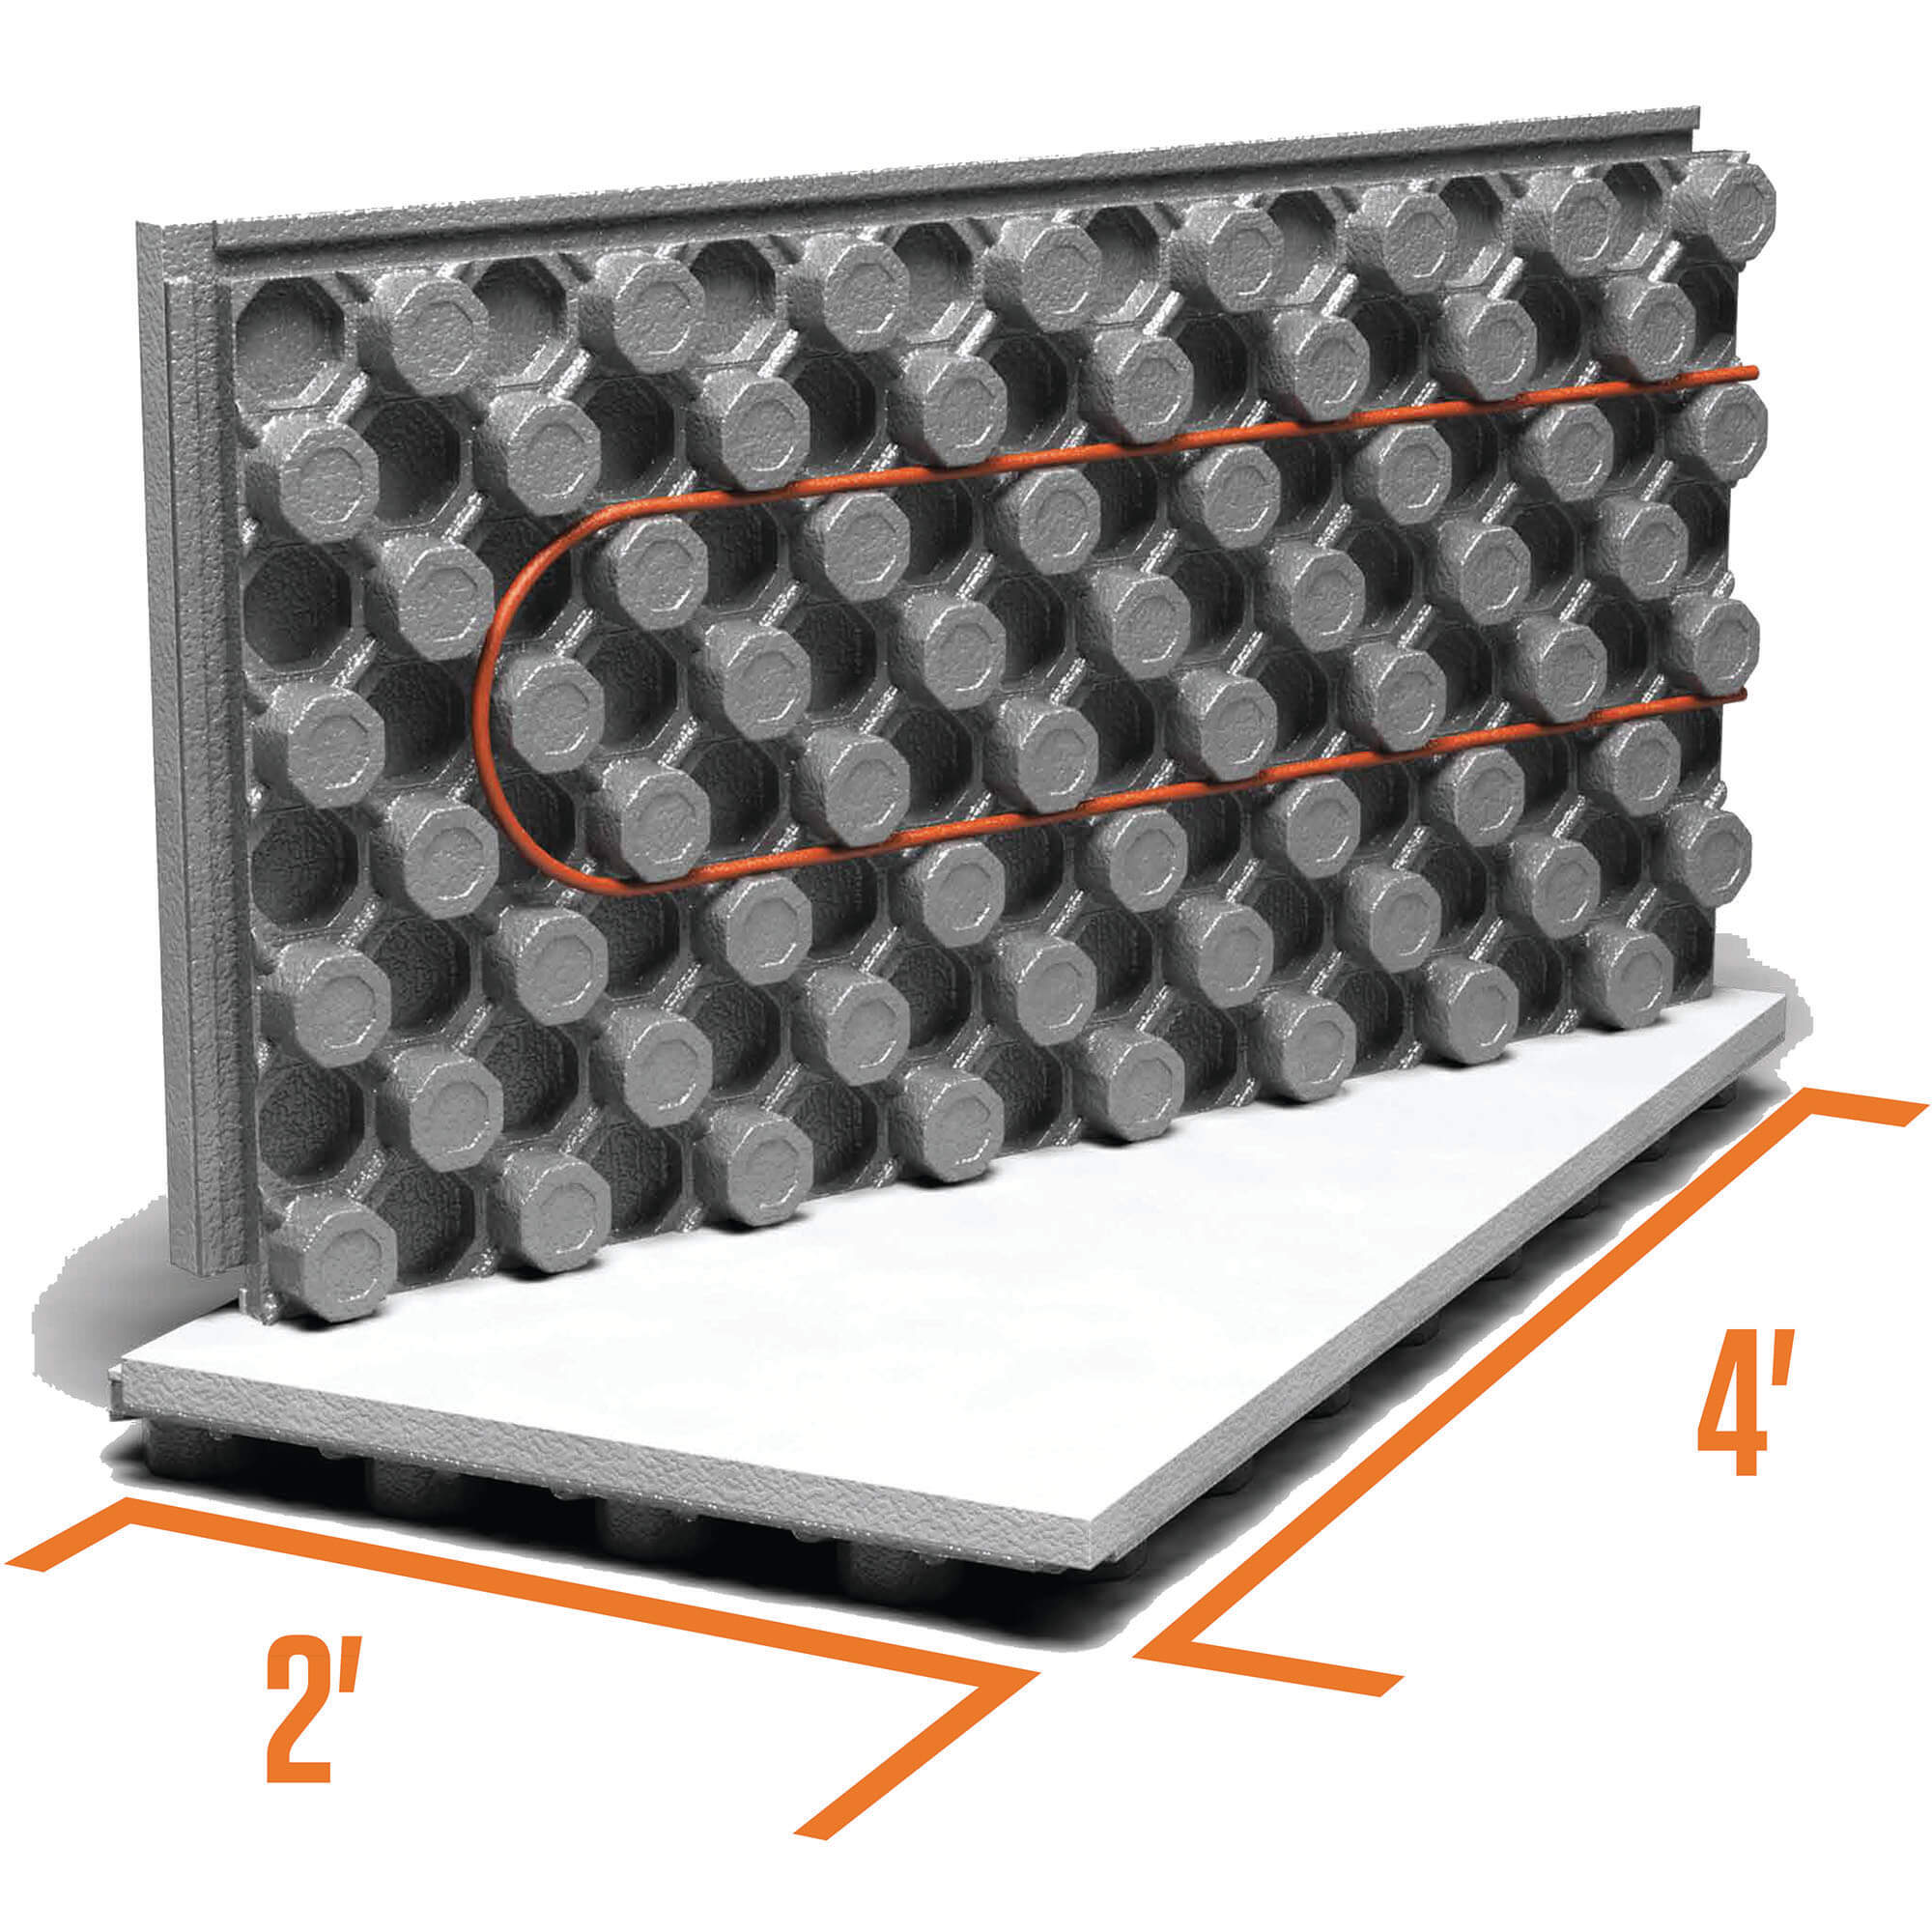 Ampex: Insulated Radiant Floor Heating Panel